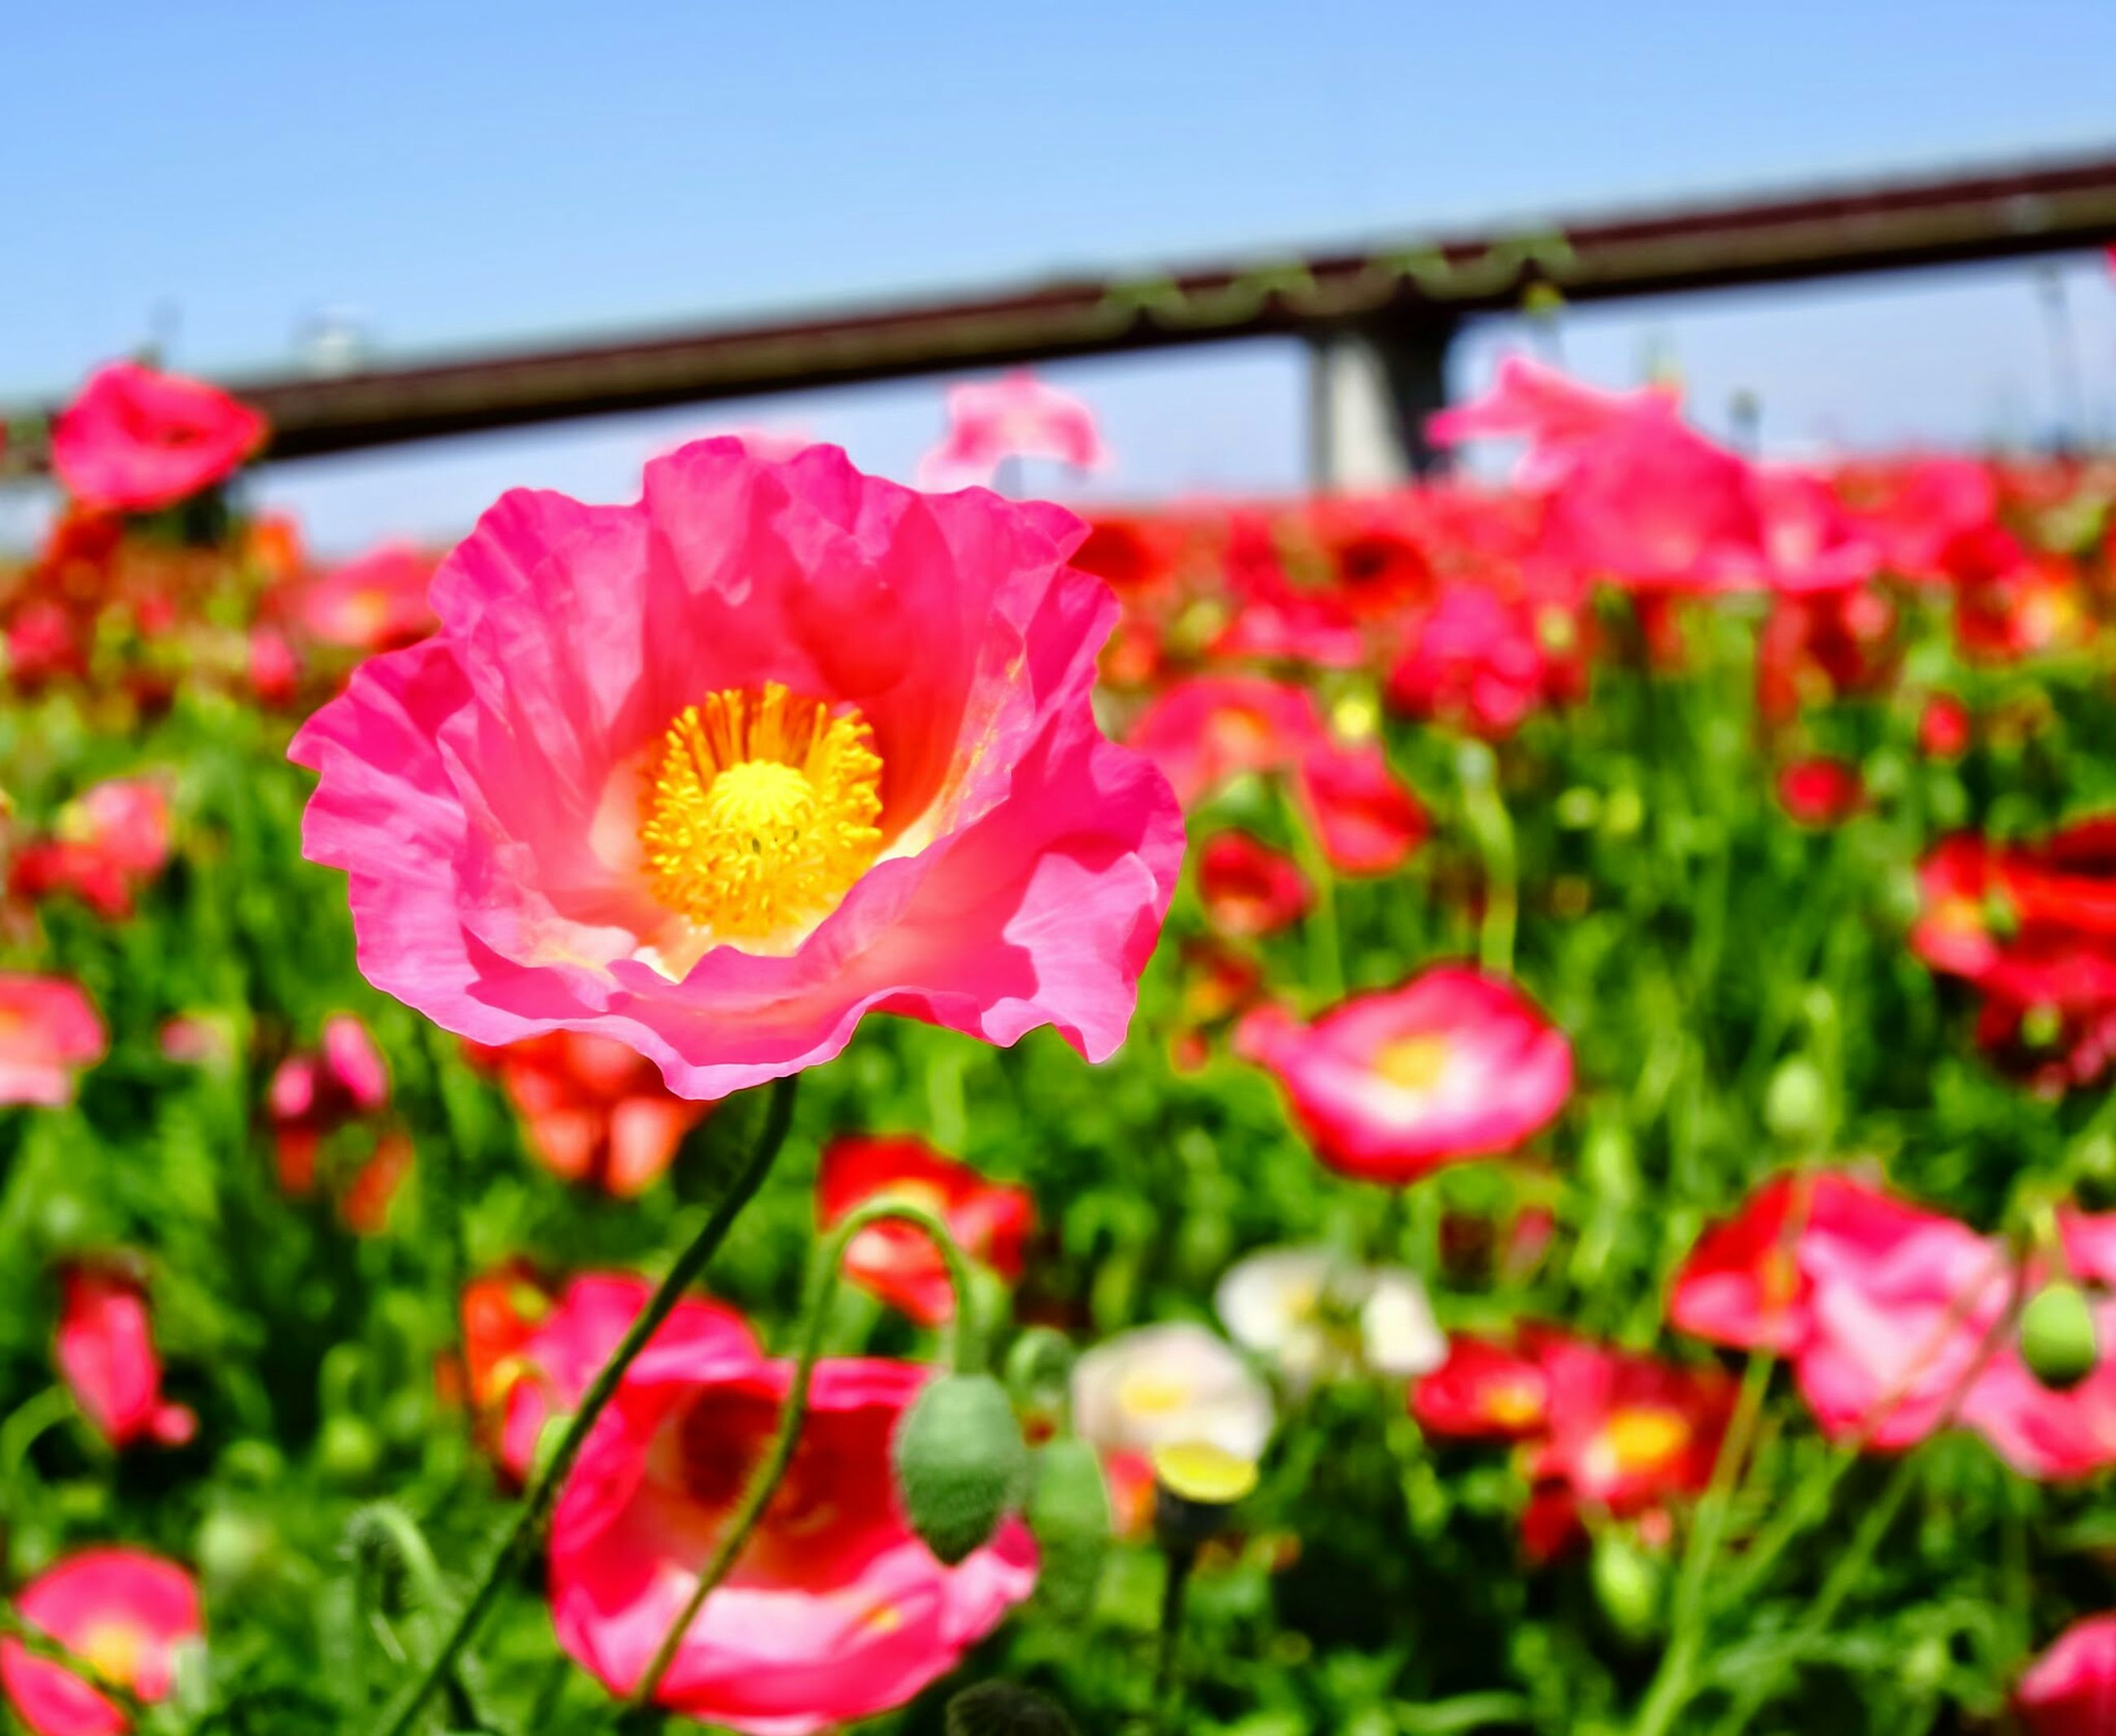 flower, freshness, petal, fragility, flower head, growth, beauty in nature, blooming, pink color, focus on foreground, nature, close-up, plant, in bloom, clear sky, blossom, red, stem, day, pink